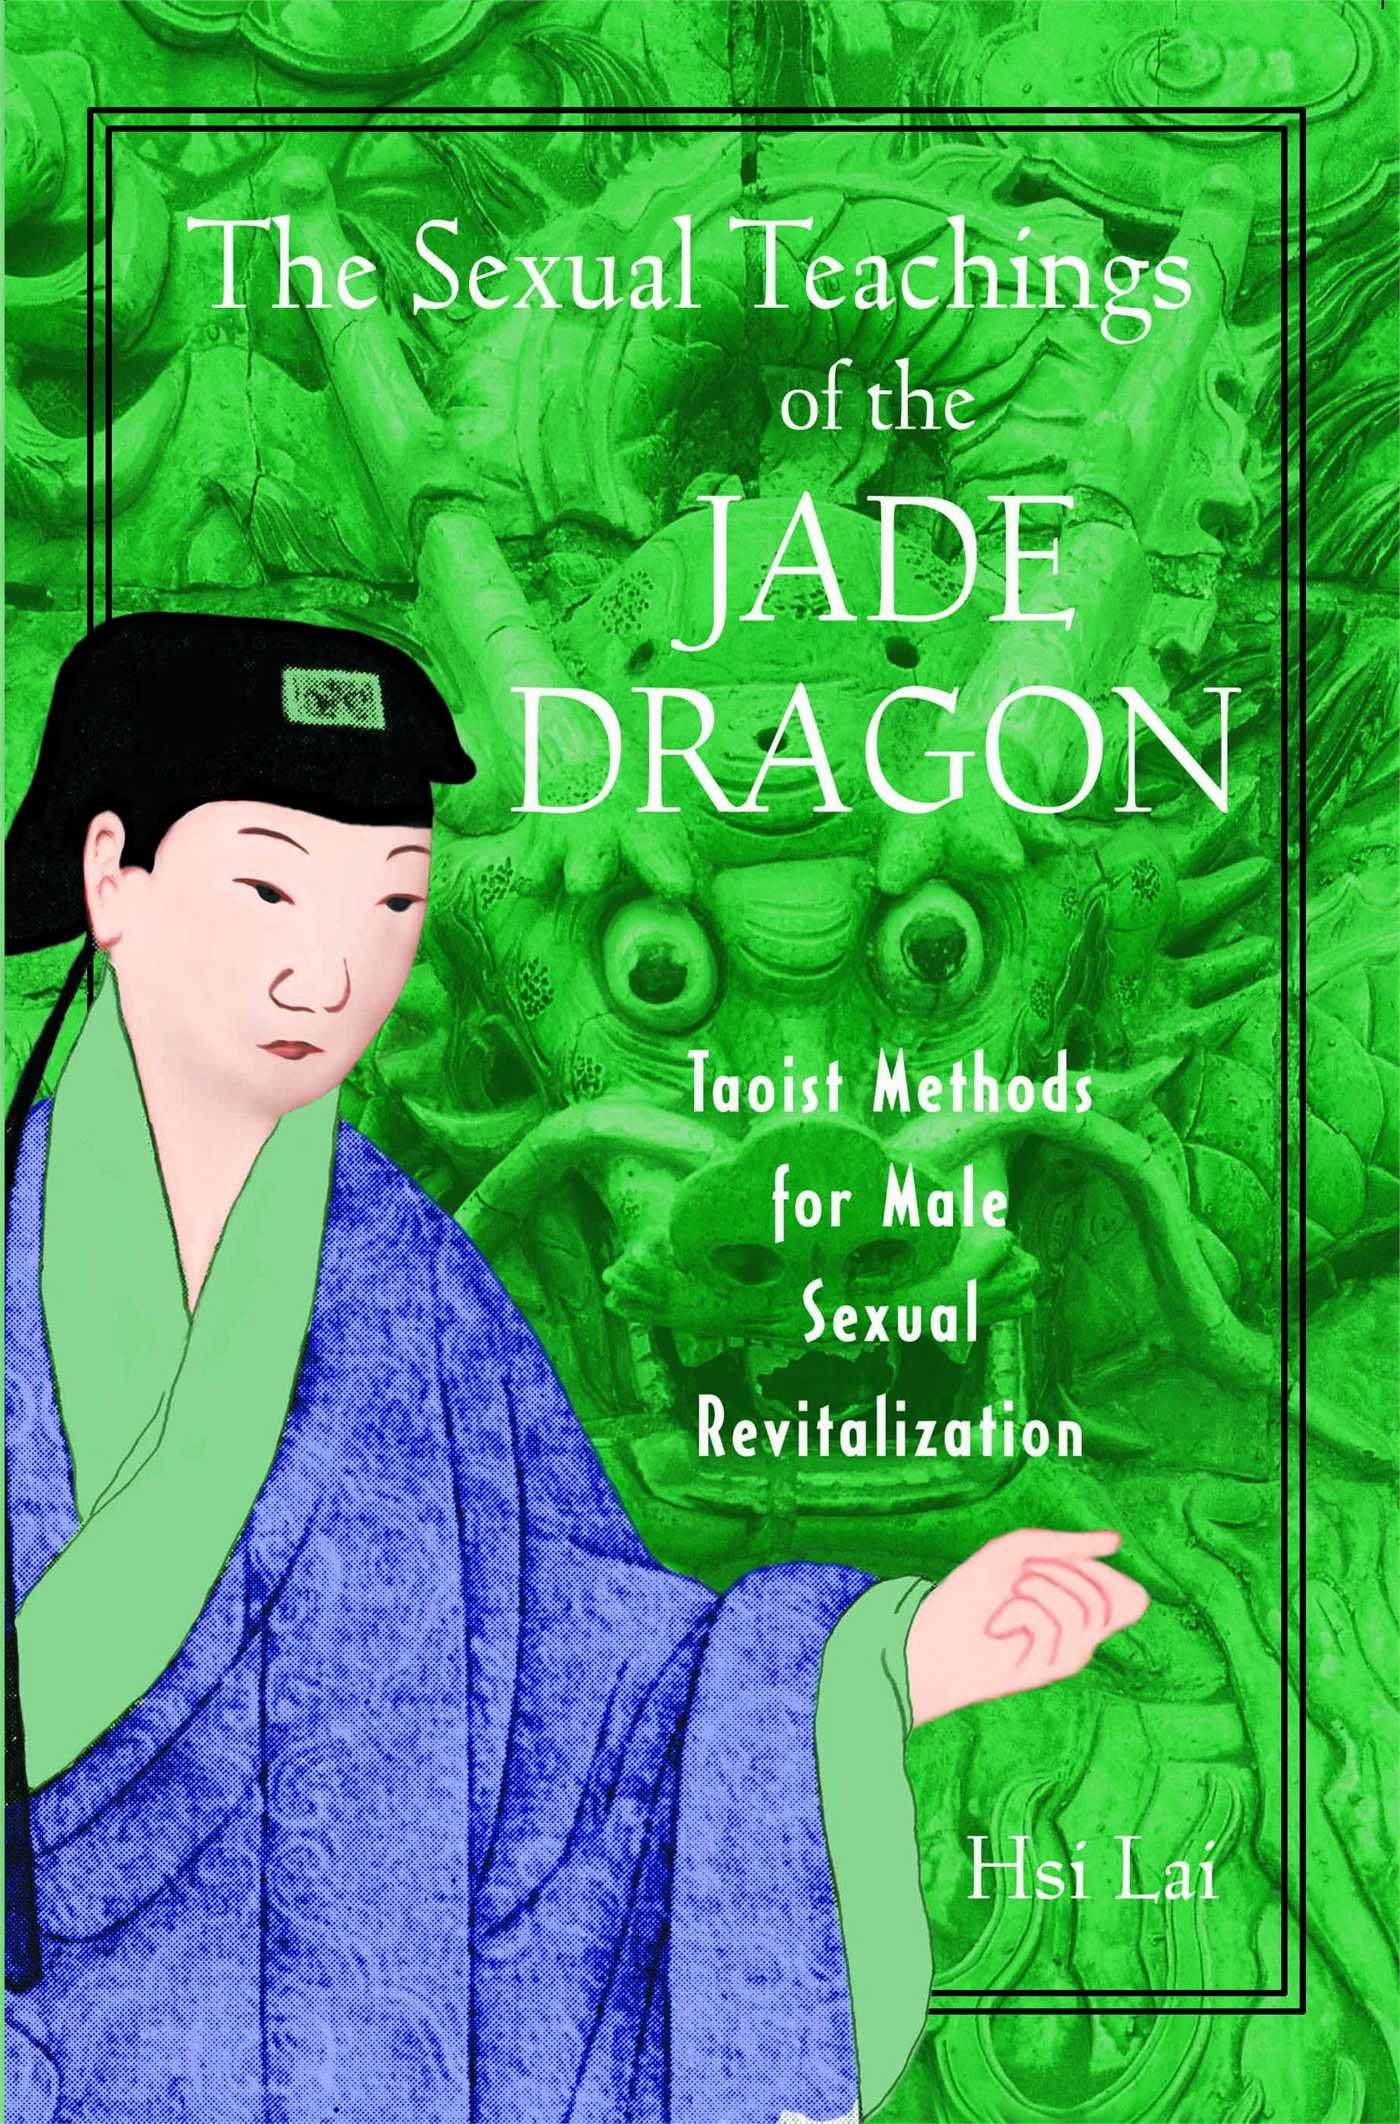 The Sexual Teachings Of Jade Dragon Taoist Methods For Male Revitalization Hsi Lai 9780892819638 Amazon Books